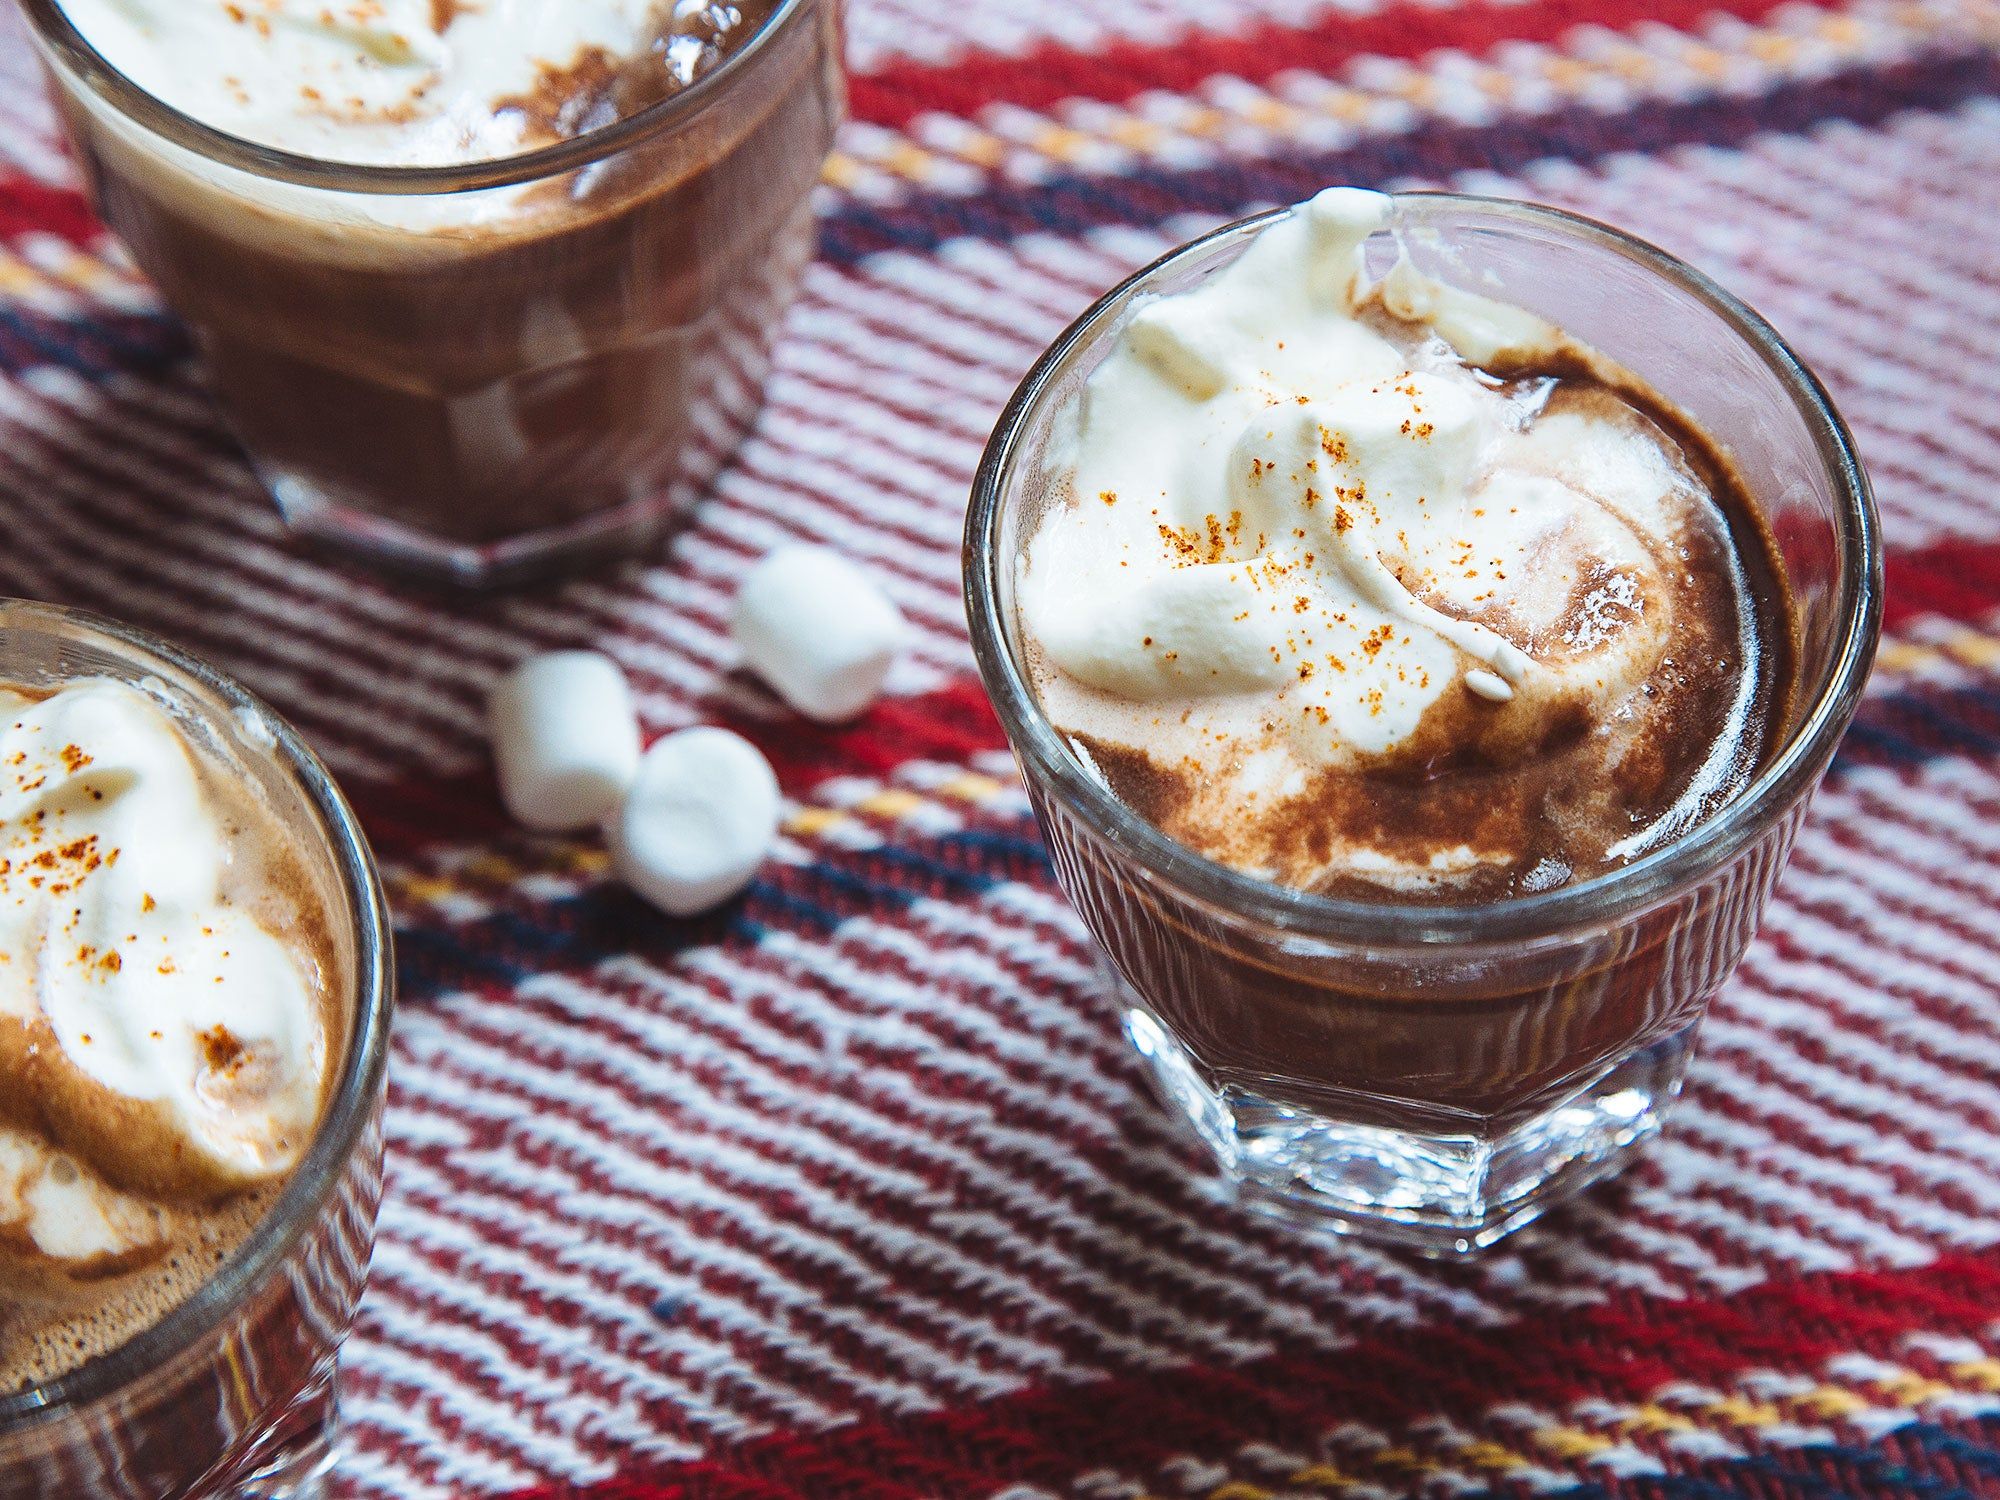 Spicy Hot Chocolate with Fermented Chile Paste